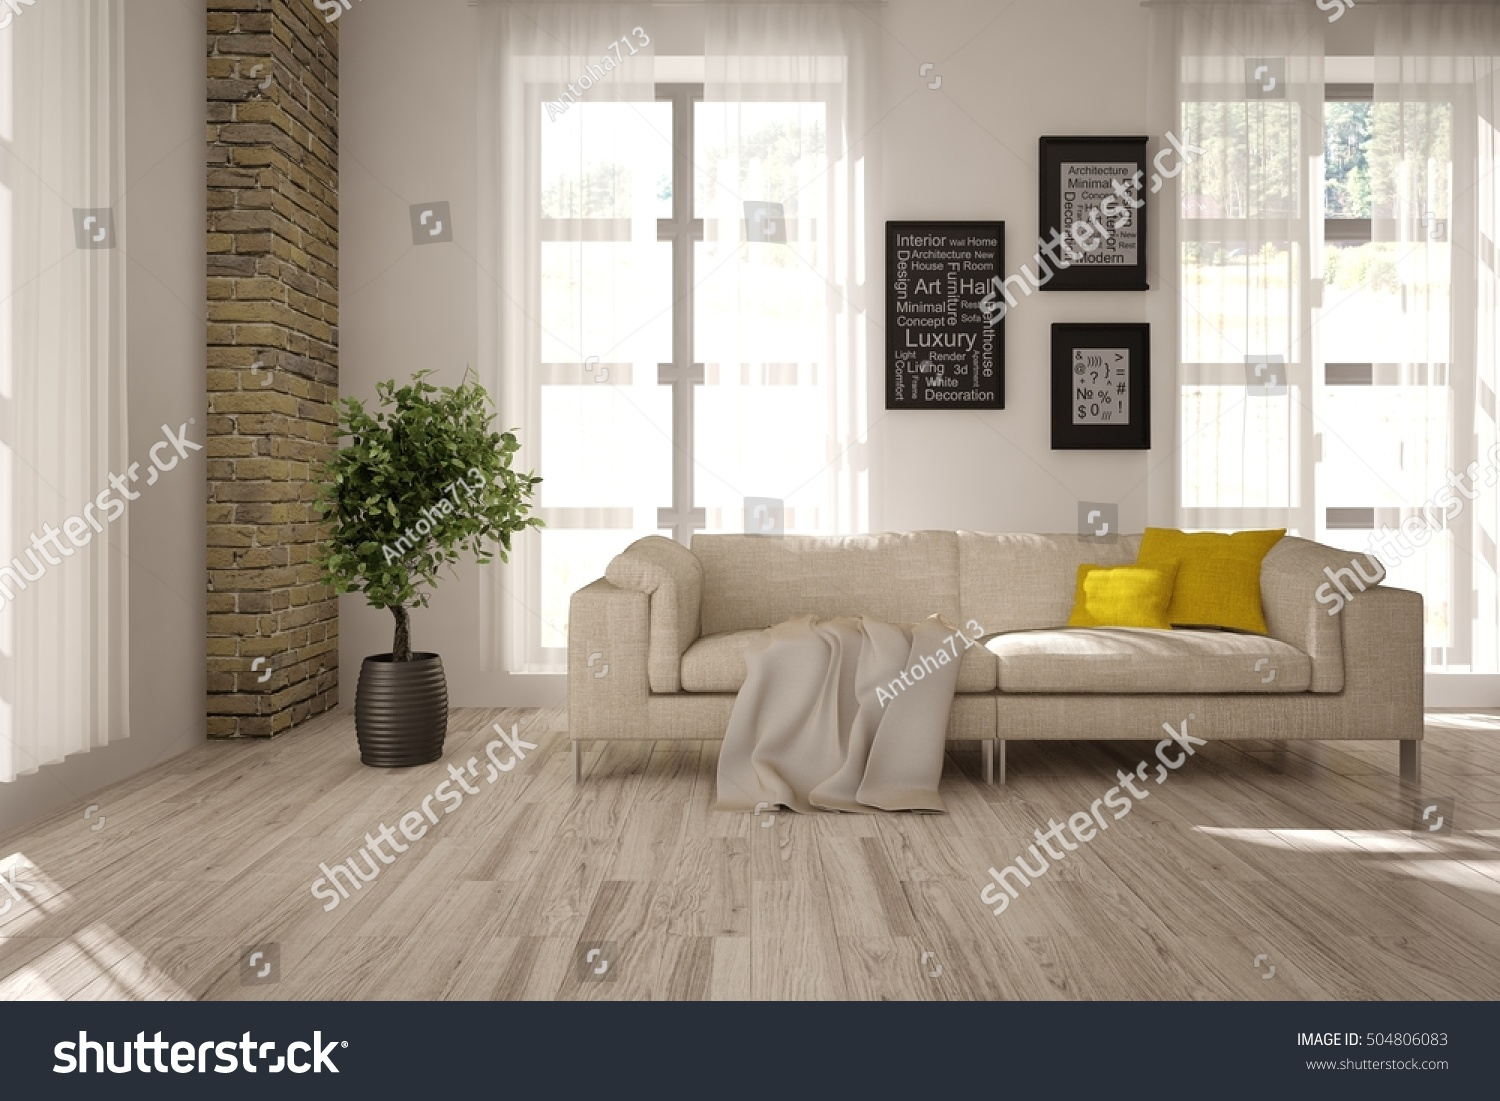 White Interior Design Living Room Scandinavian Stock Illustration 504806083 Shutterstock